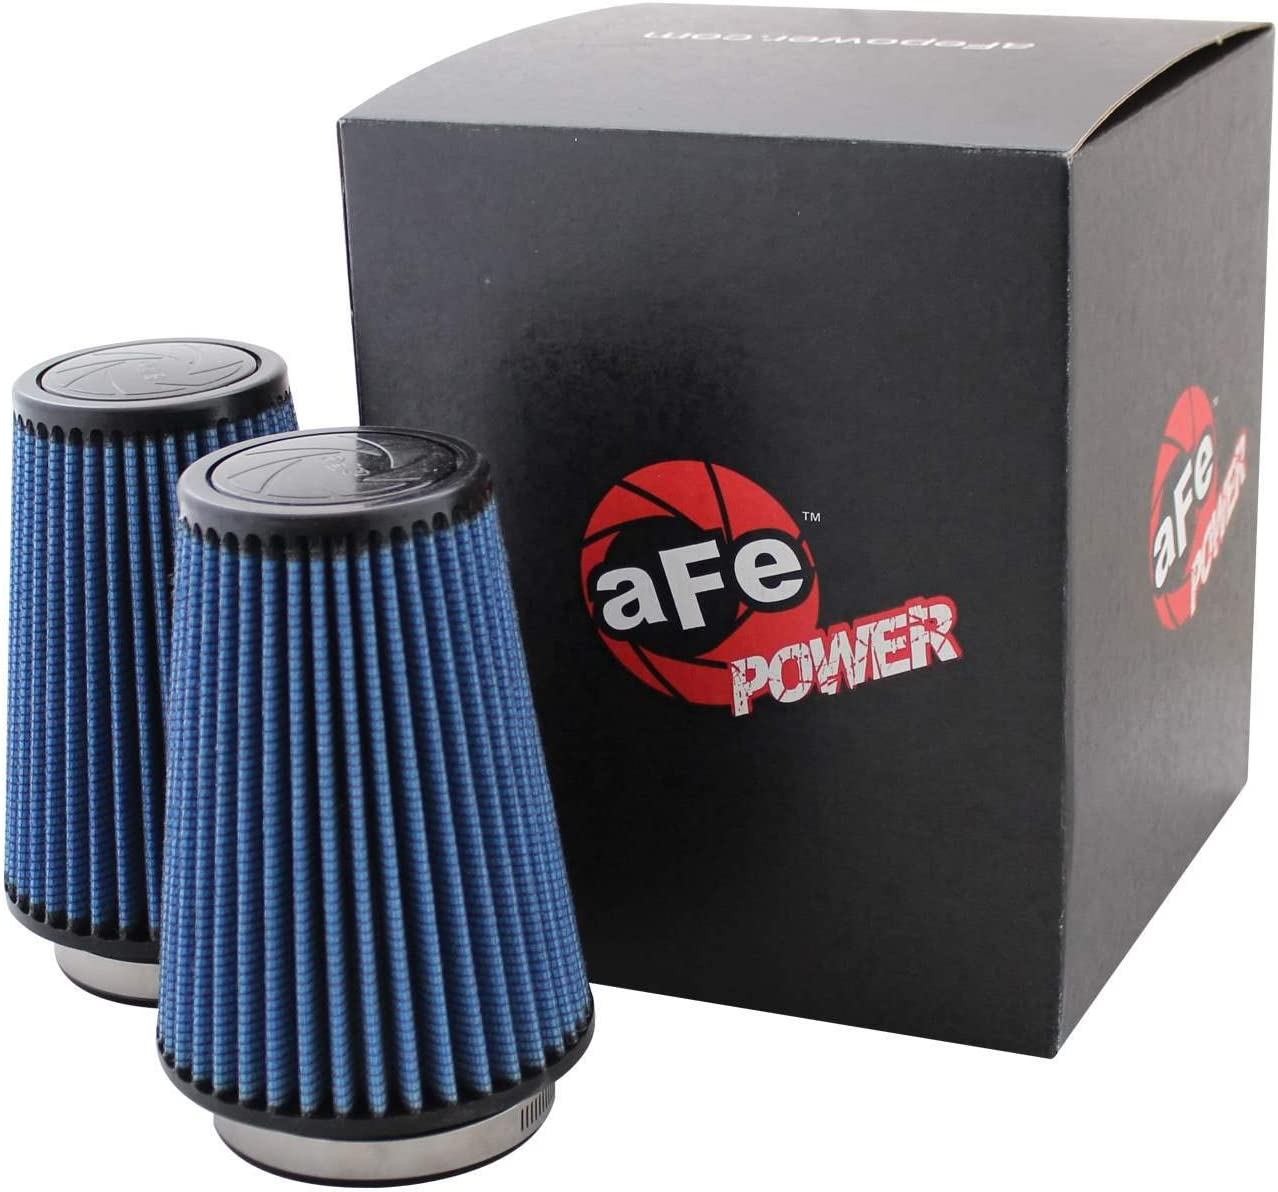 aFe Power 24-90033 Universal Clamp-on Air Filter